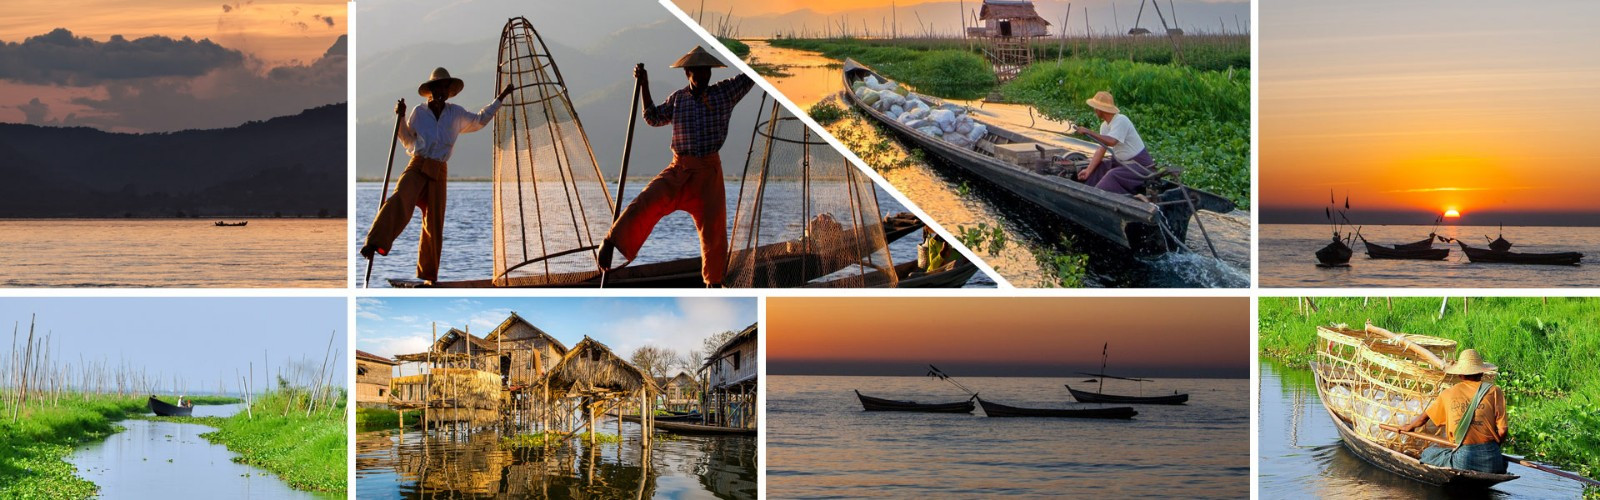 Inle Lake Holidays